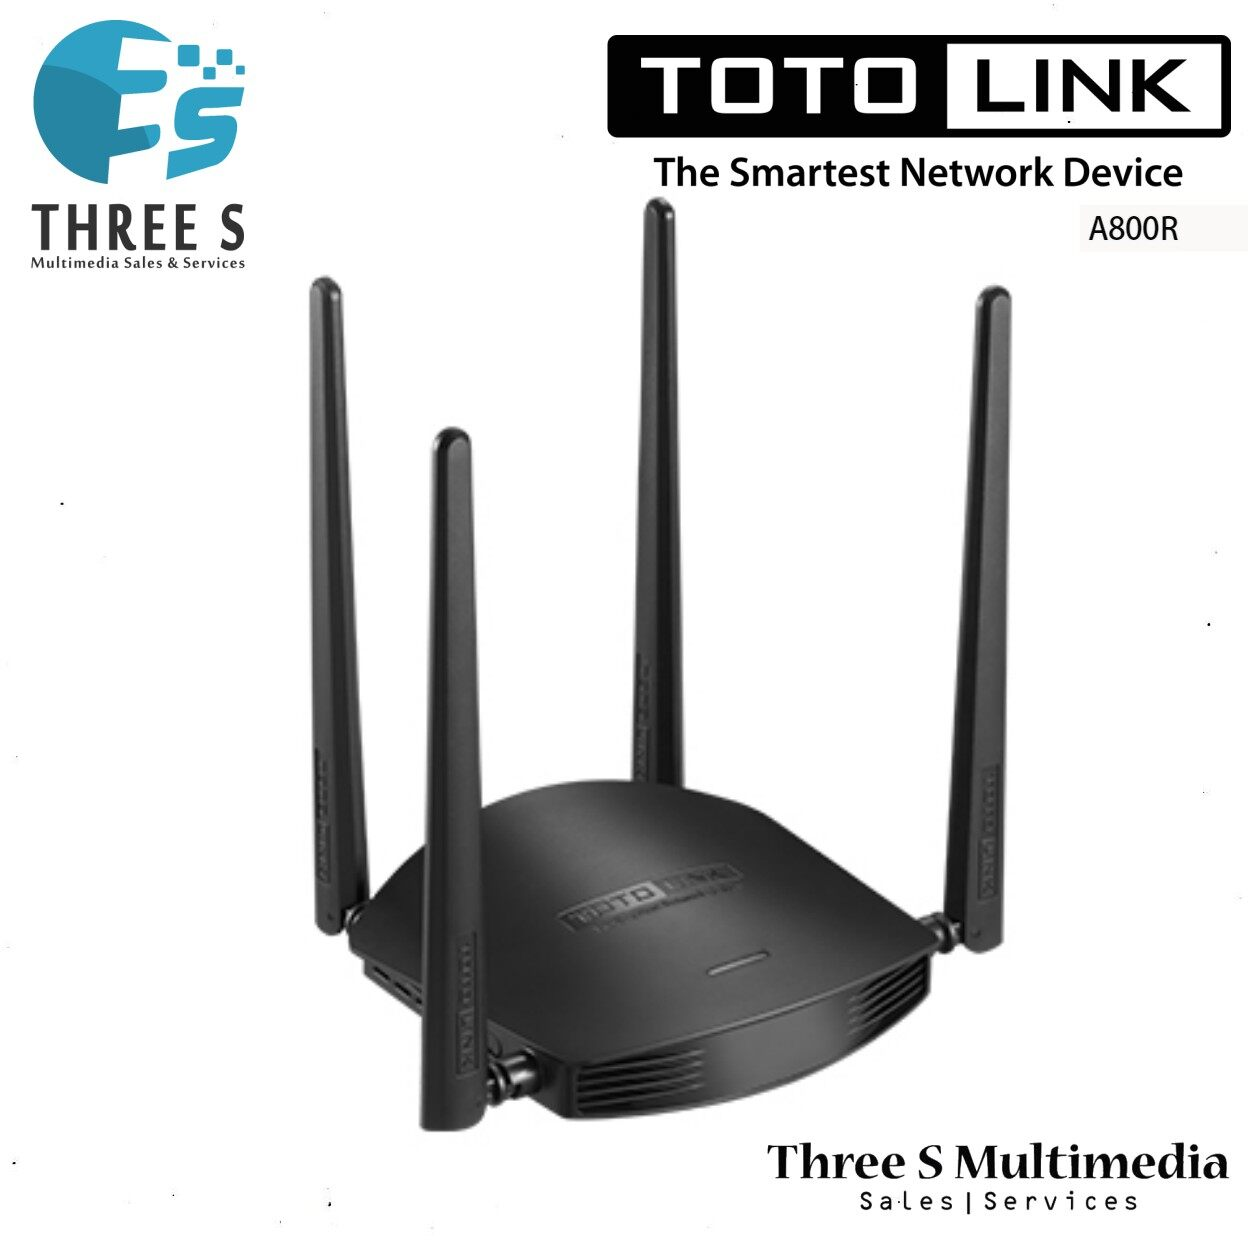 TOTO LINK AC1200 Wireless Dual Band Router A800R